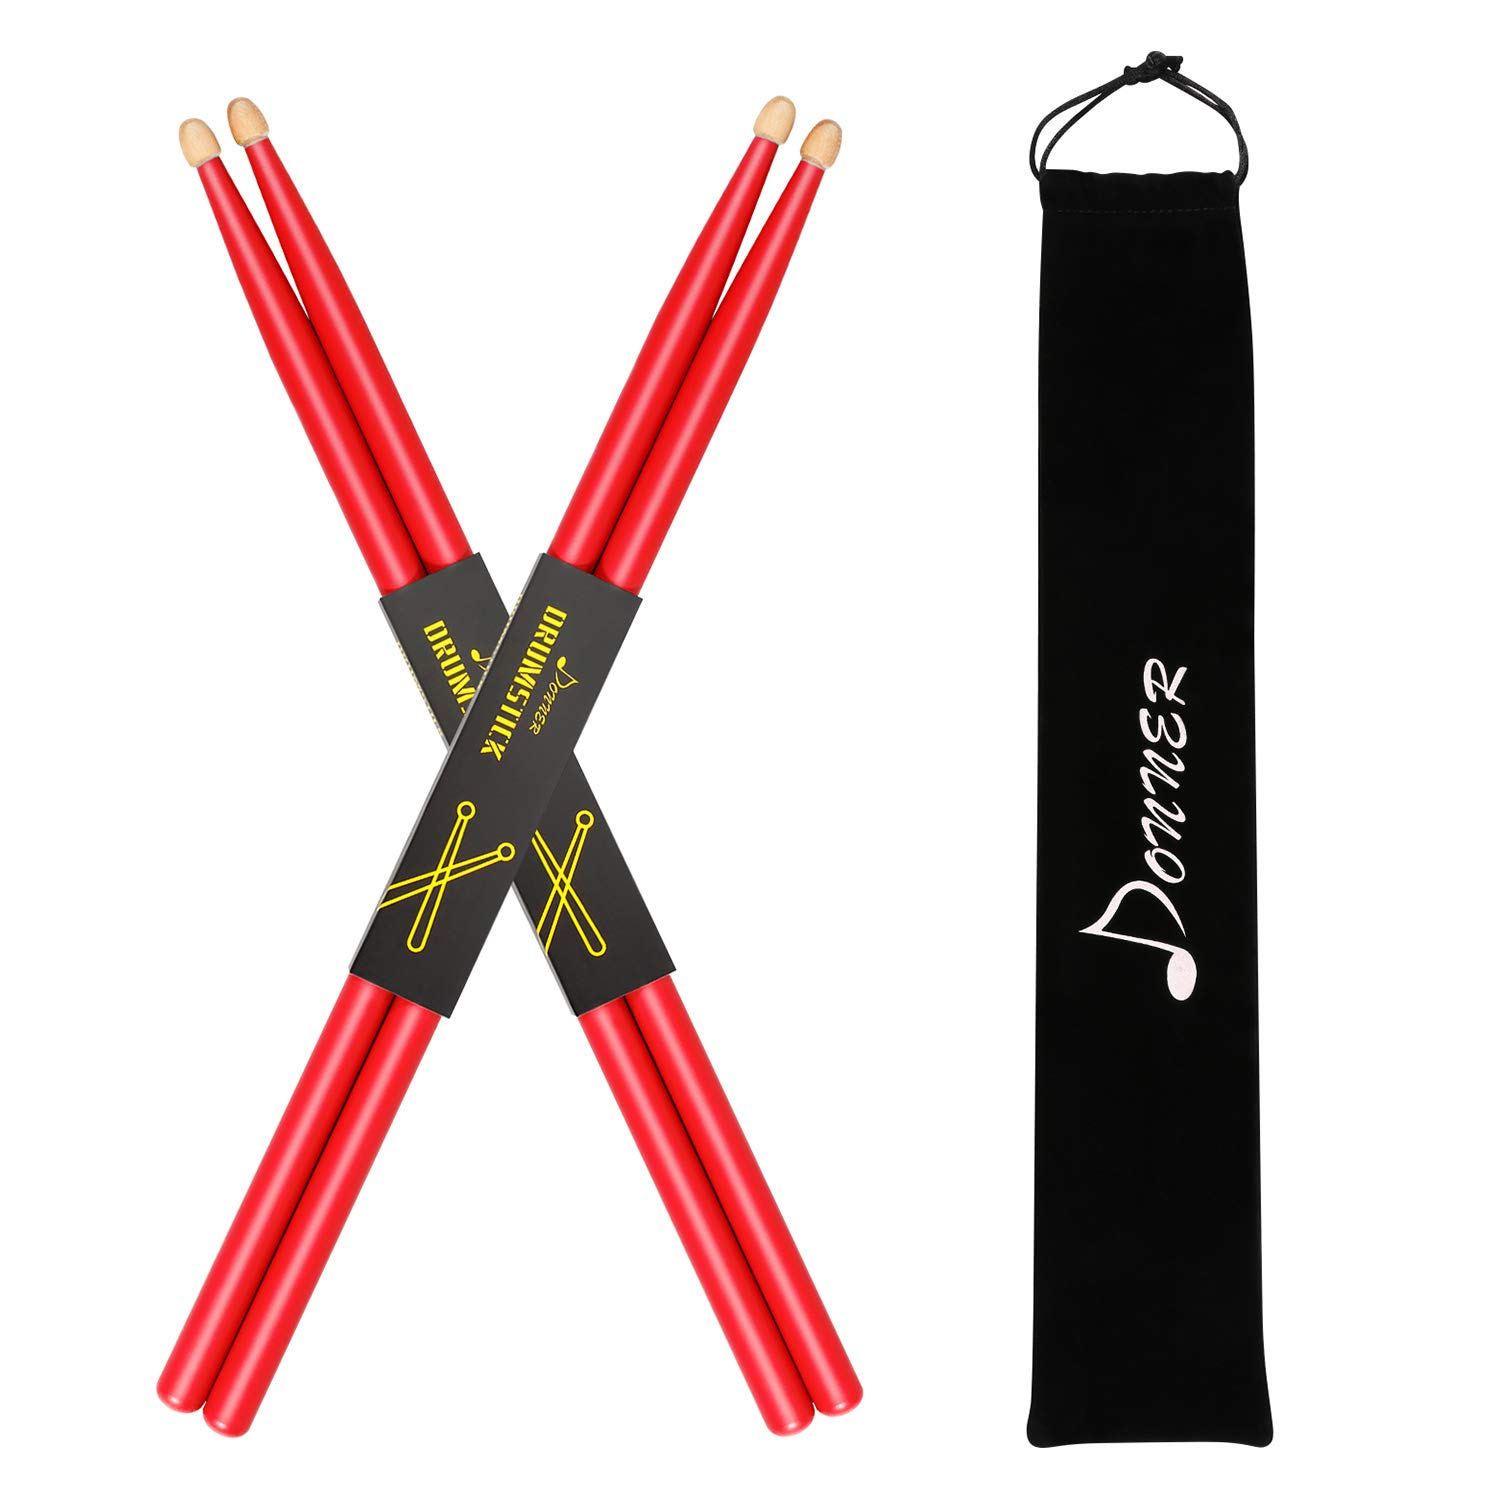 Donner Drum Sticks, 2 Pair 5A Snare Drumsticks Classic Maple Wood Drumstick with Carrying Bag (Red)